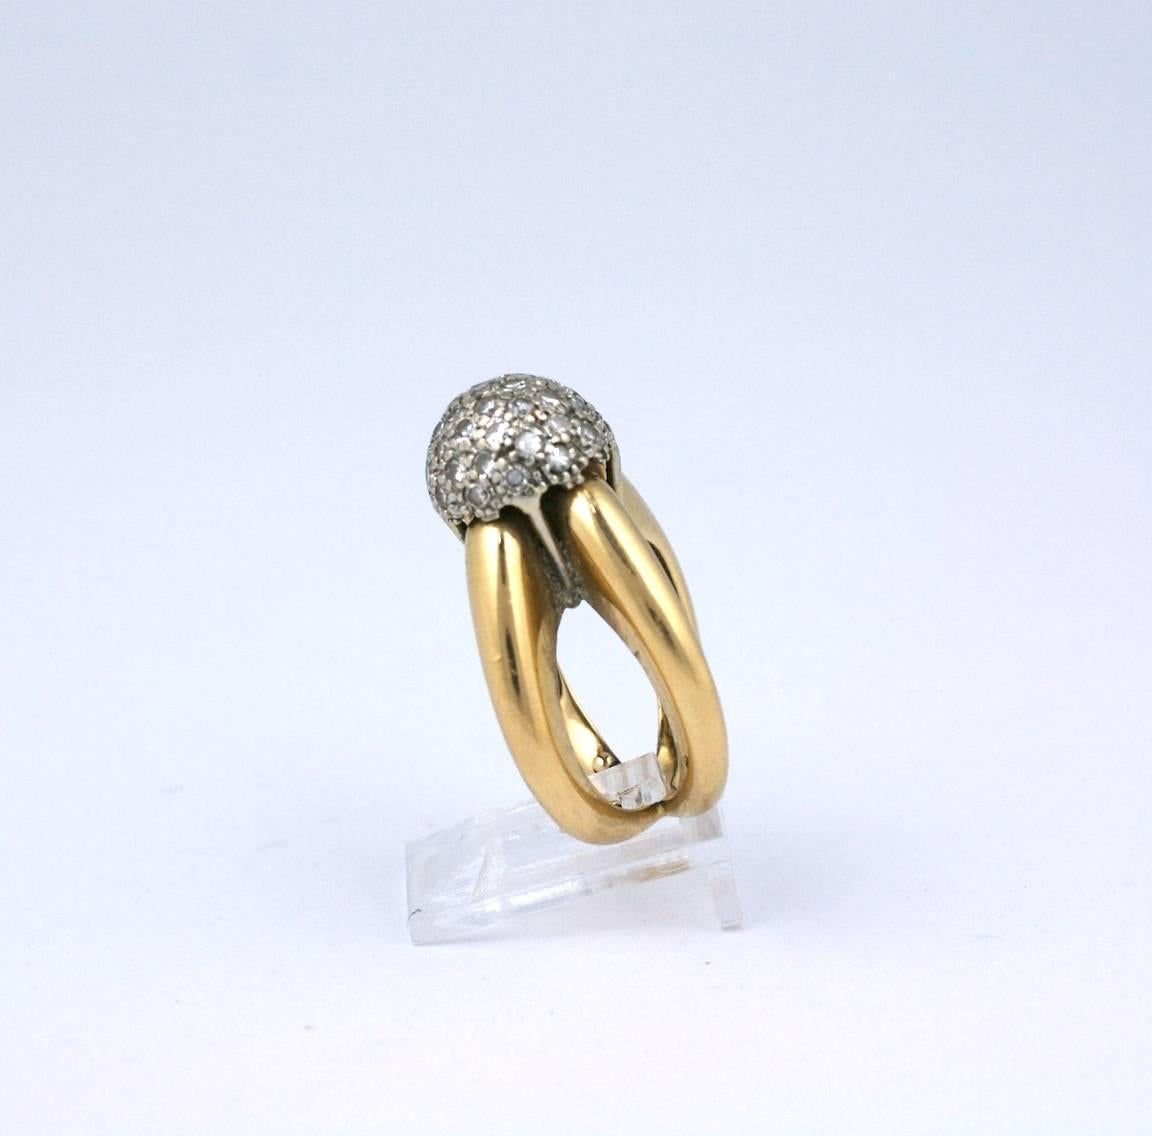 1960s Pave Diamond Ball Ring For Sale at 1stdibs